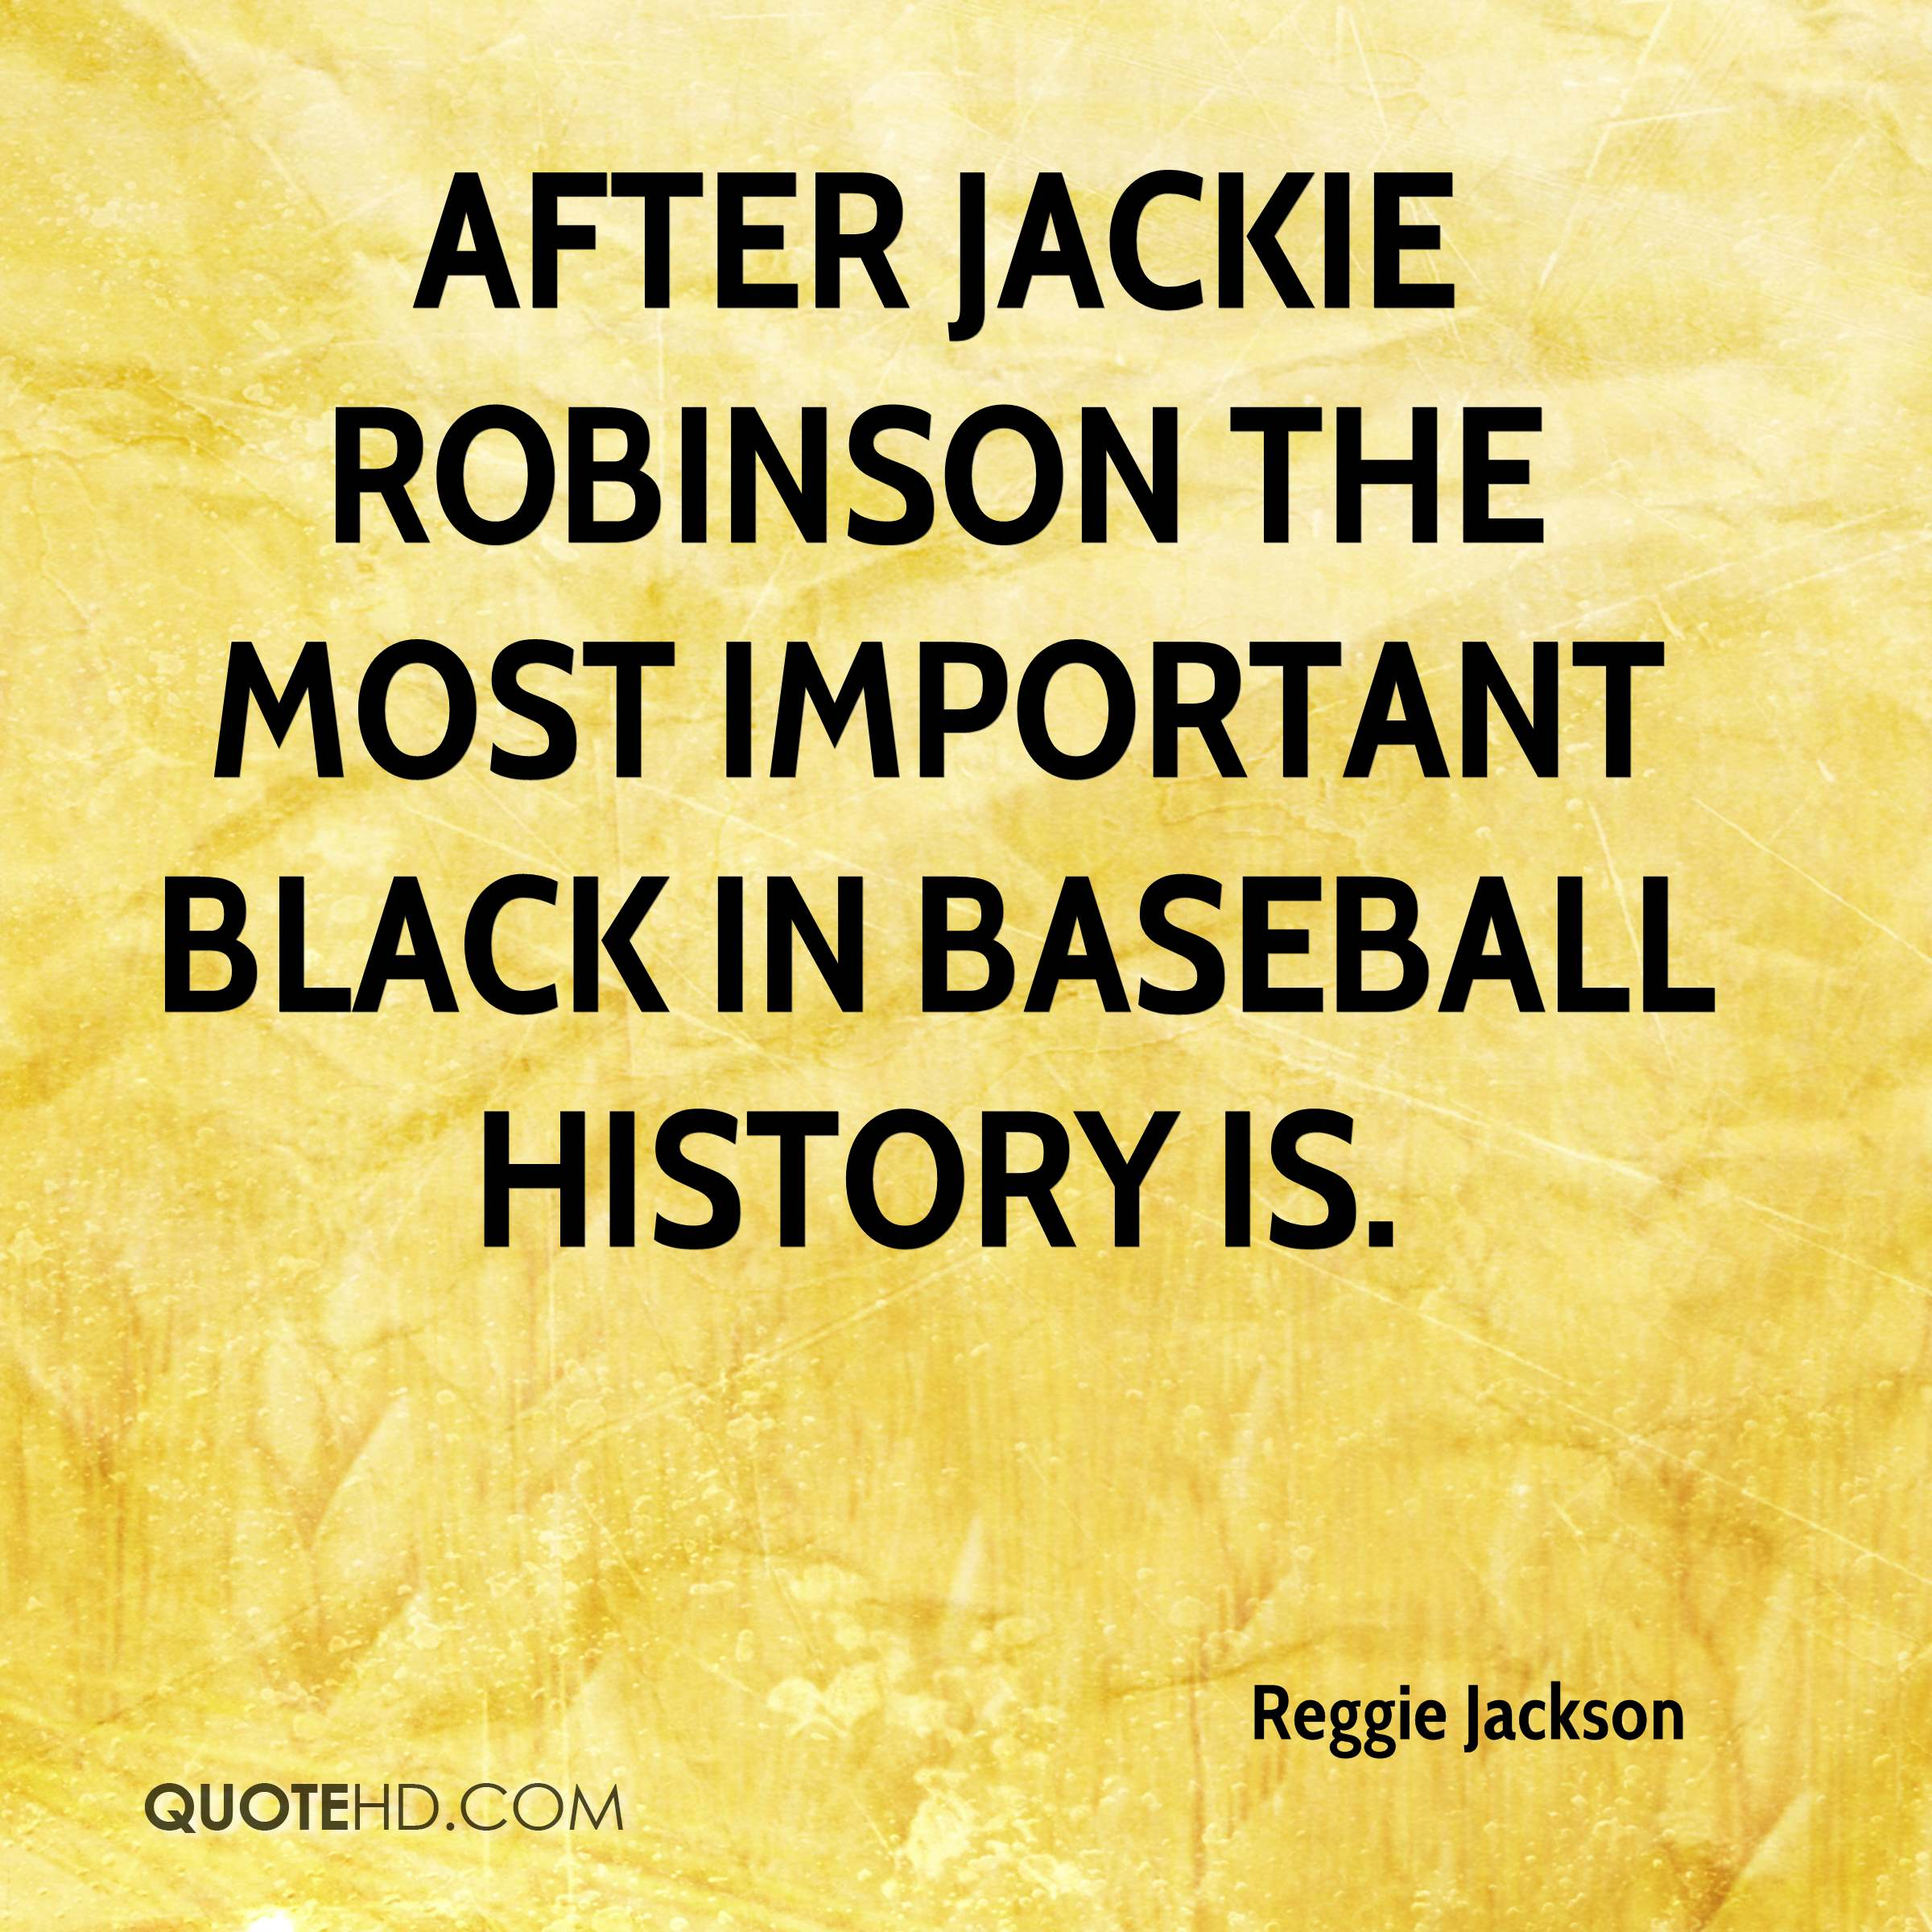 After Jackie Robinson the most important black in baseball history is.